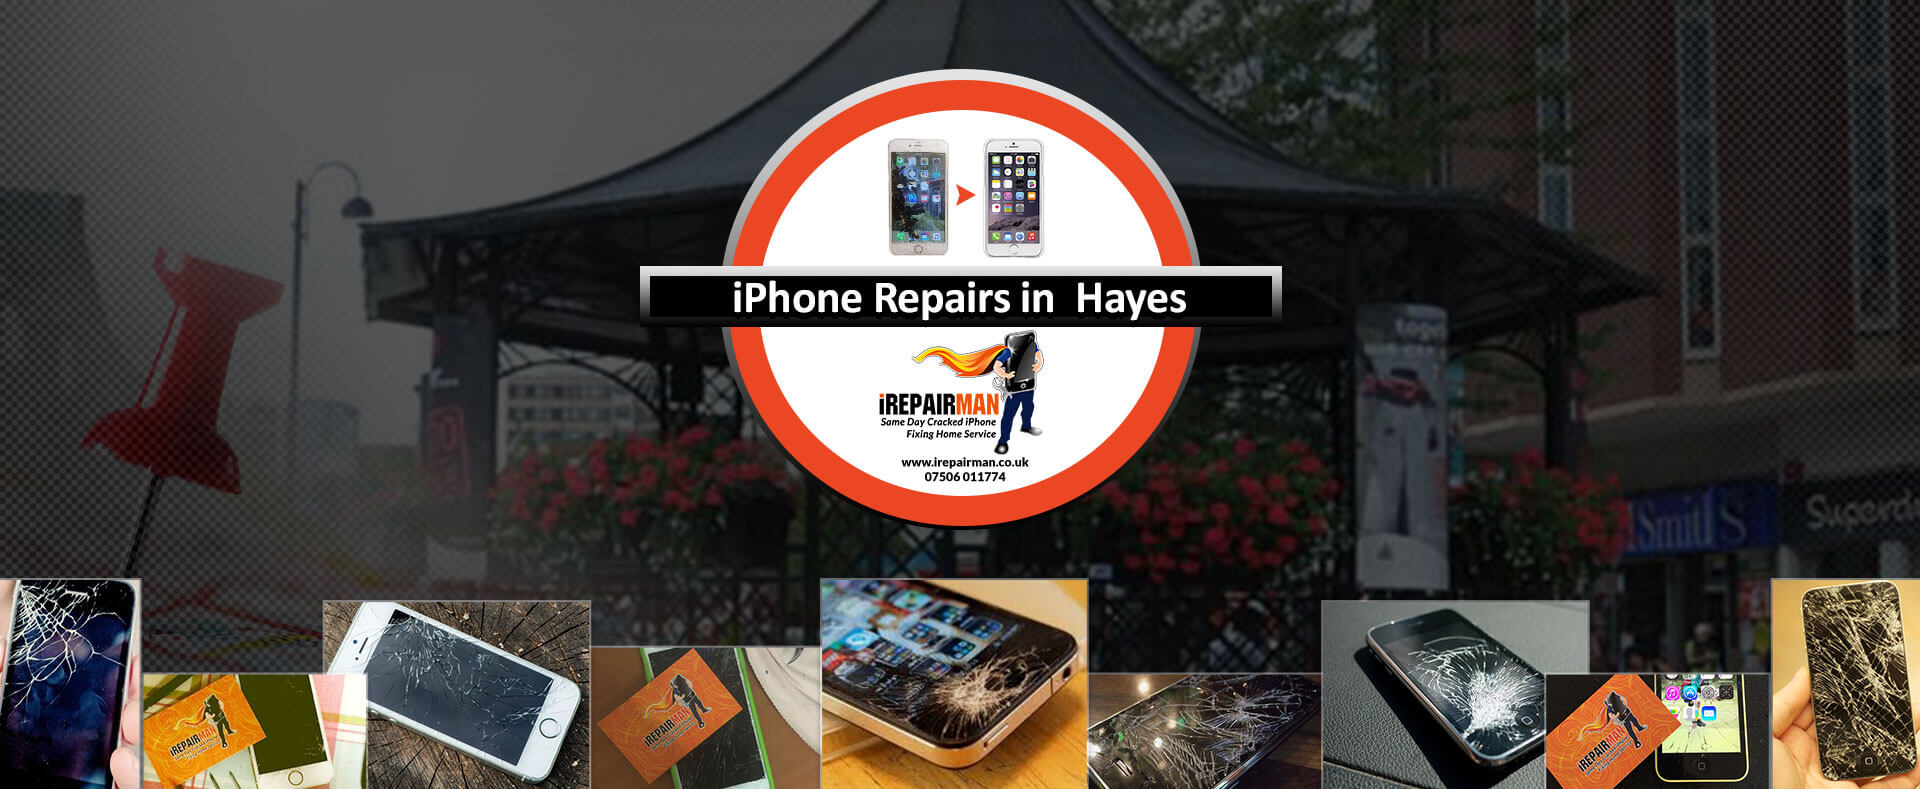 iPhone Repairs in Hayes